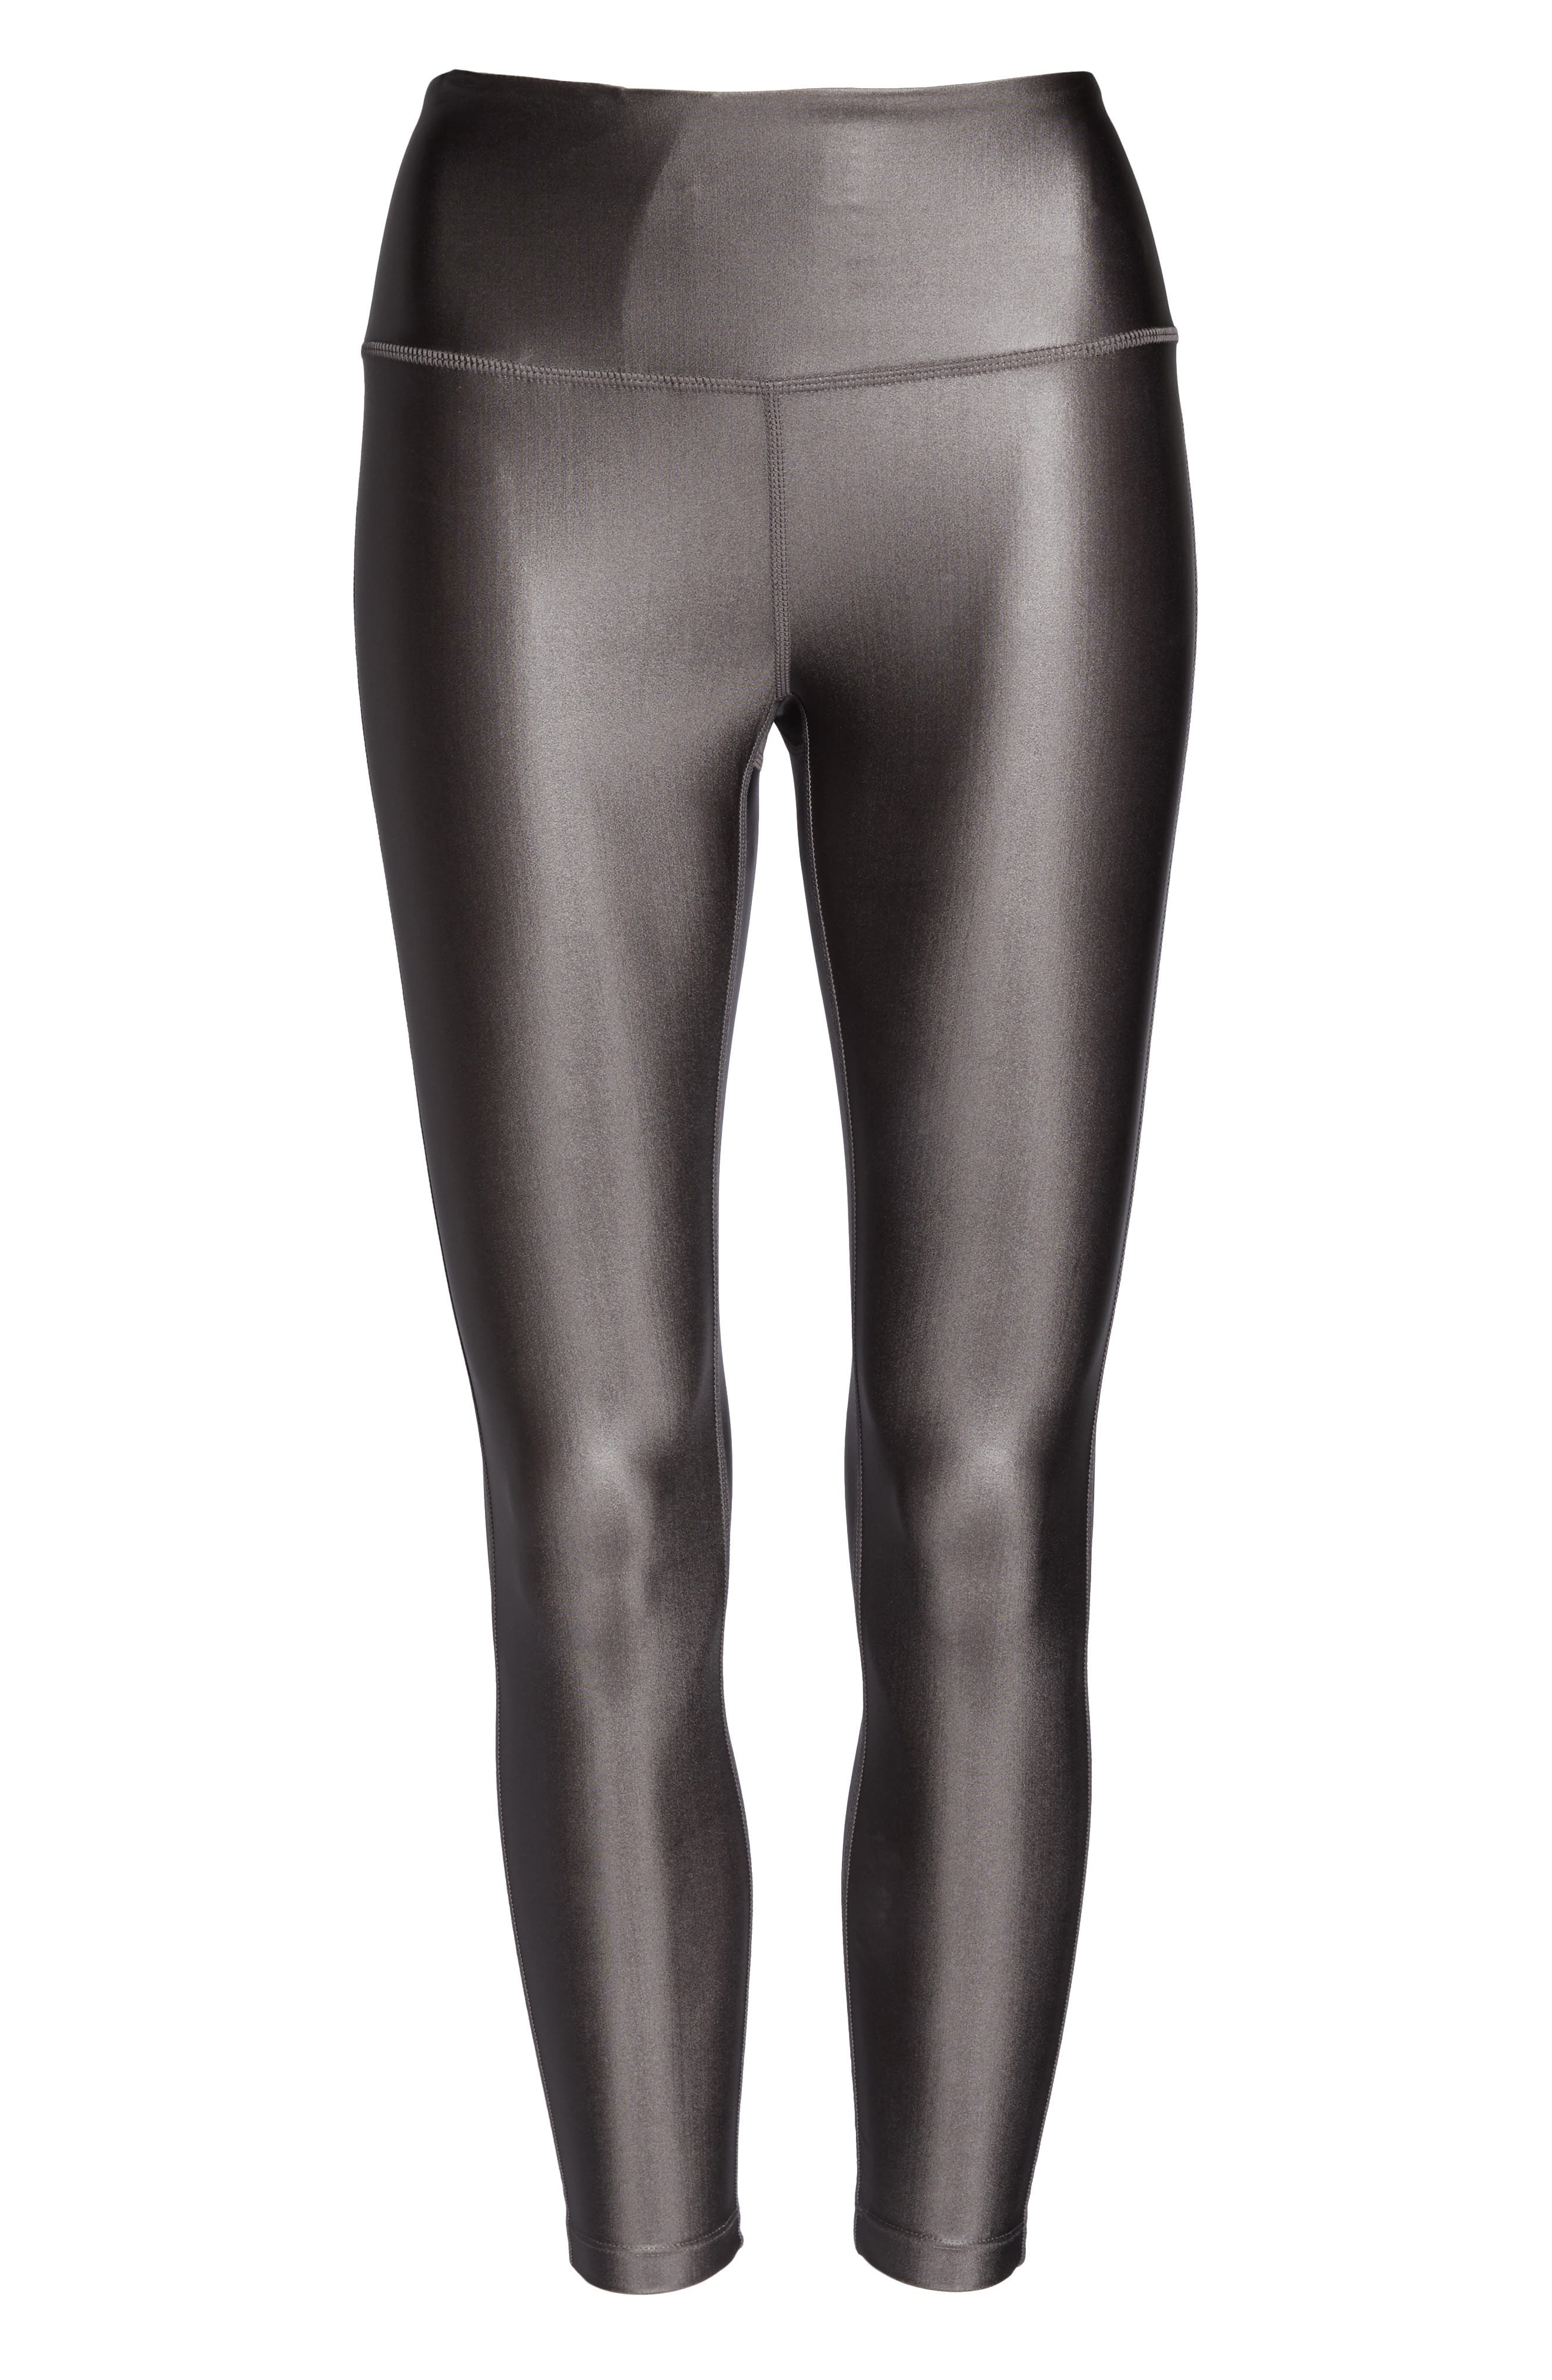 High Waist Shine Midi Leggings,                             Alternate thumbnail 7, color,                             GREY KITTEN